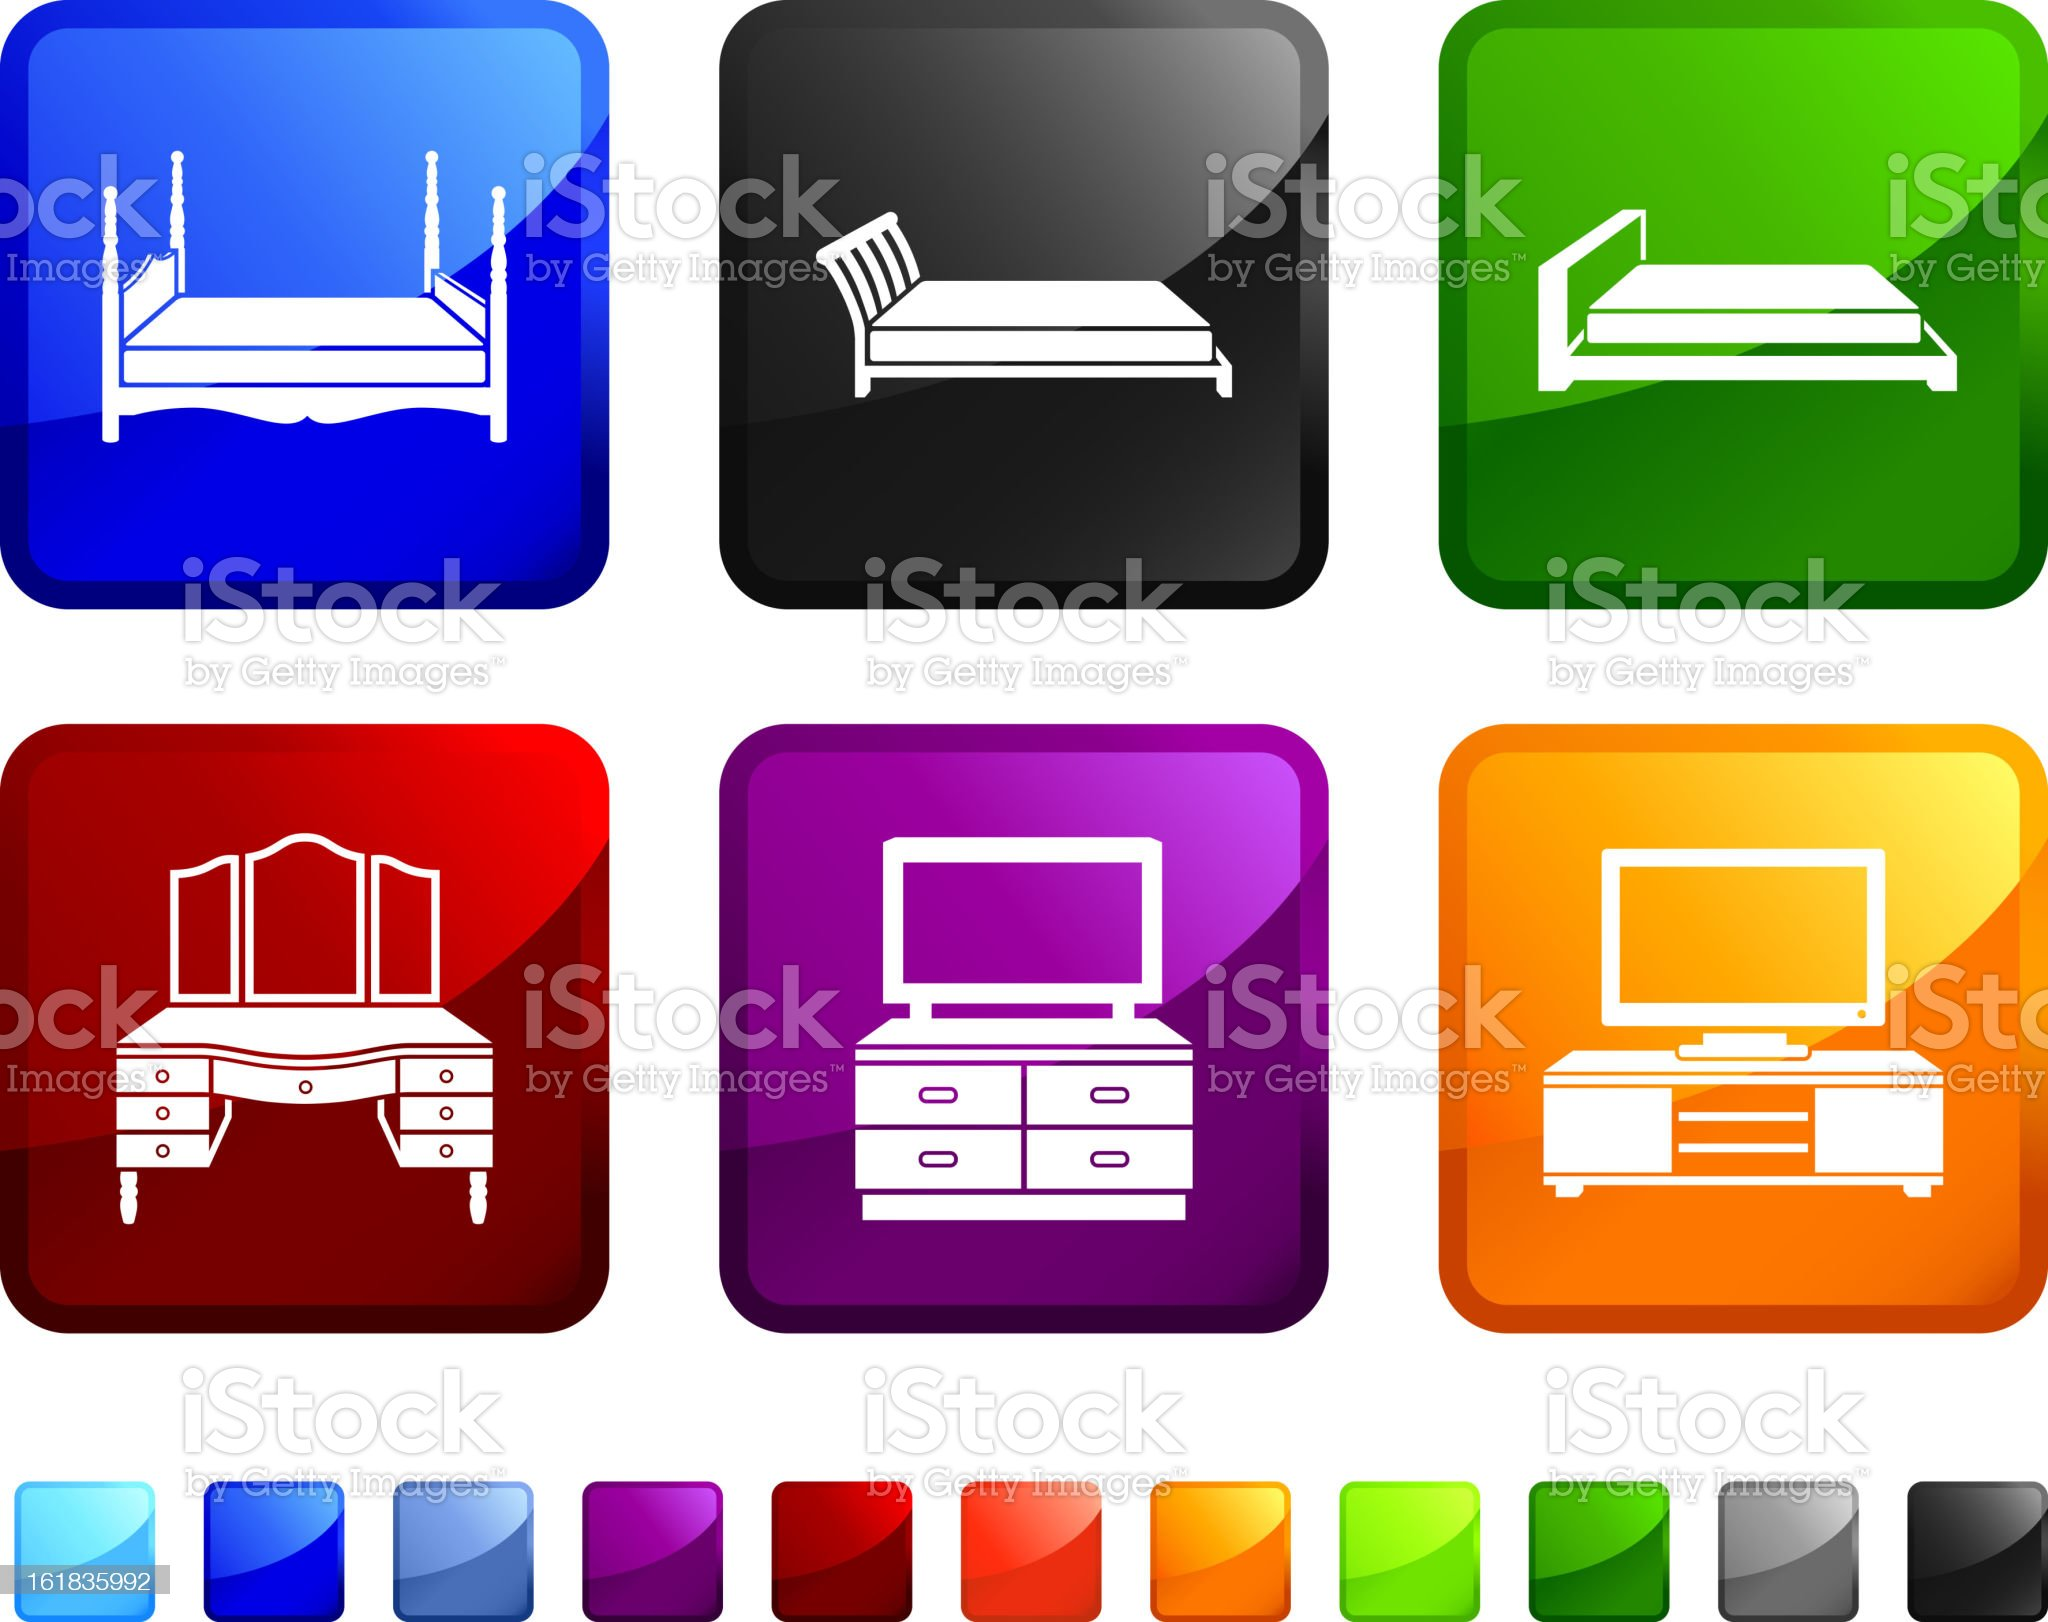 Bedroom Accessories royalty free vector icon set royalty-free stock vector art